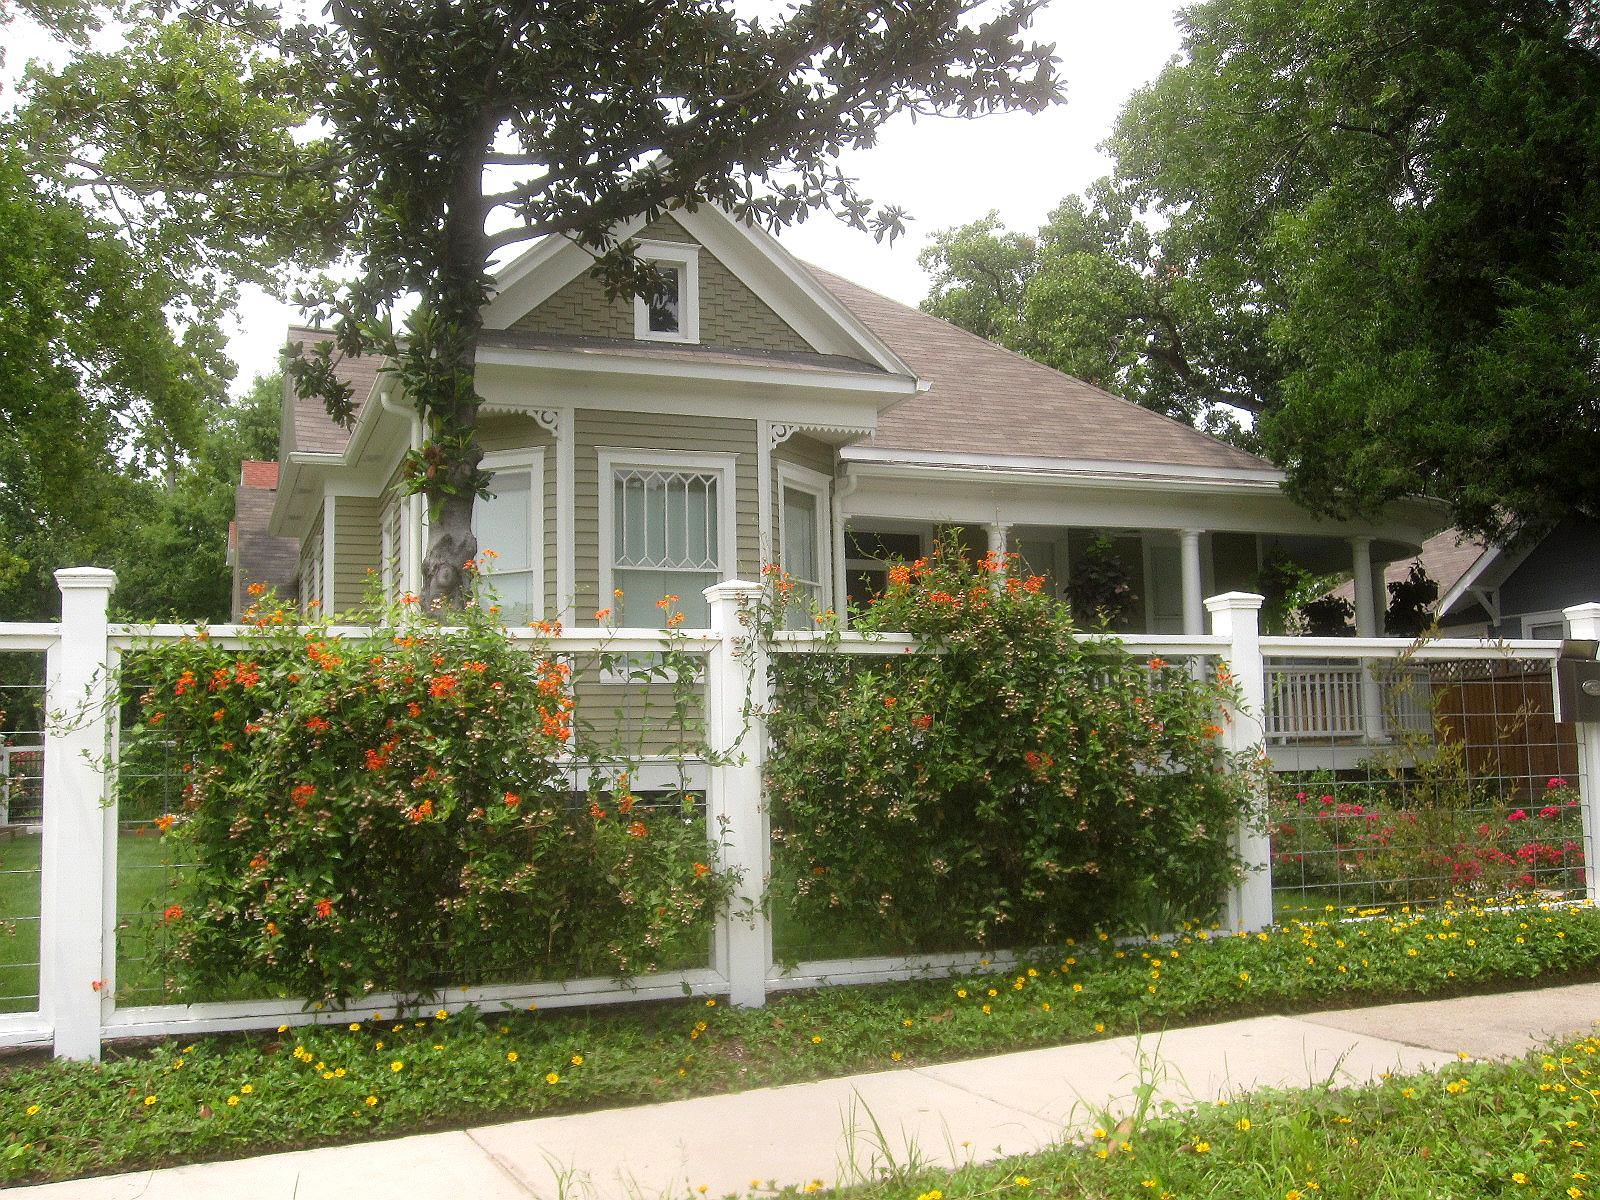 The other houston bungalow front yard garden ideas - Fence designs for front yards ...